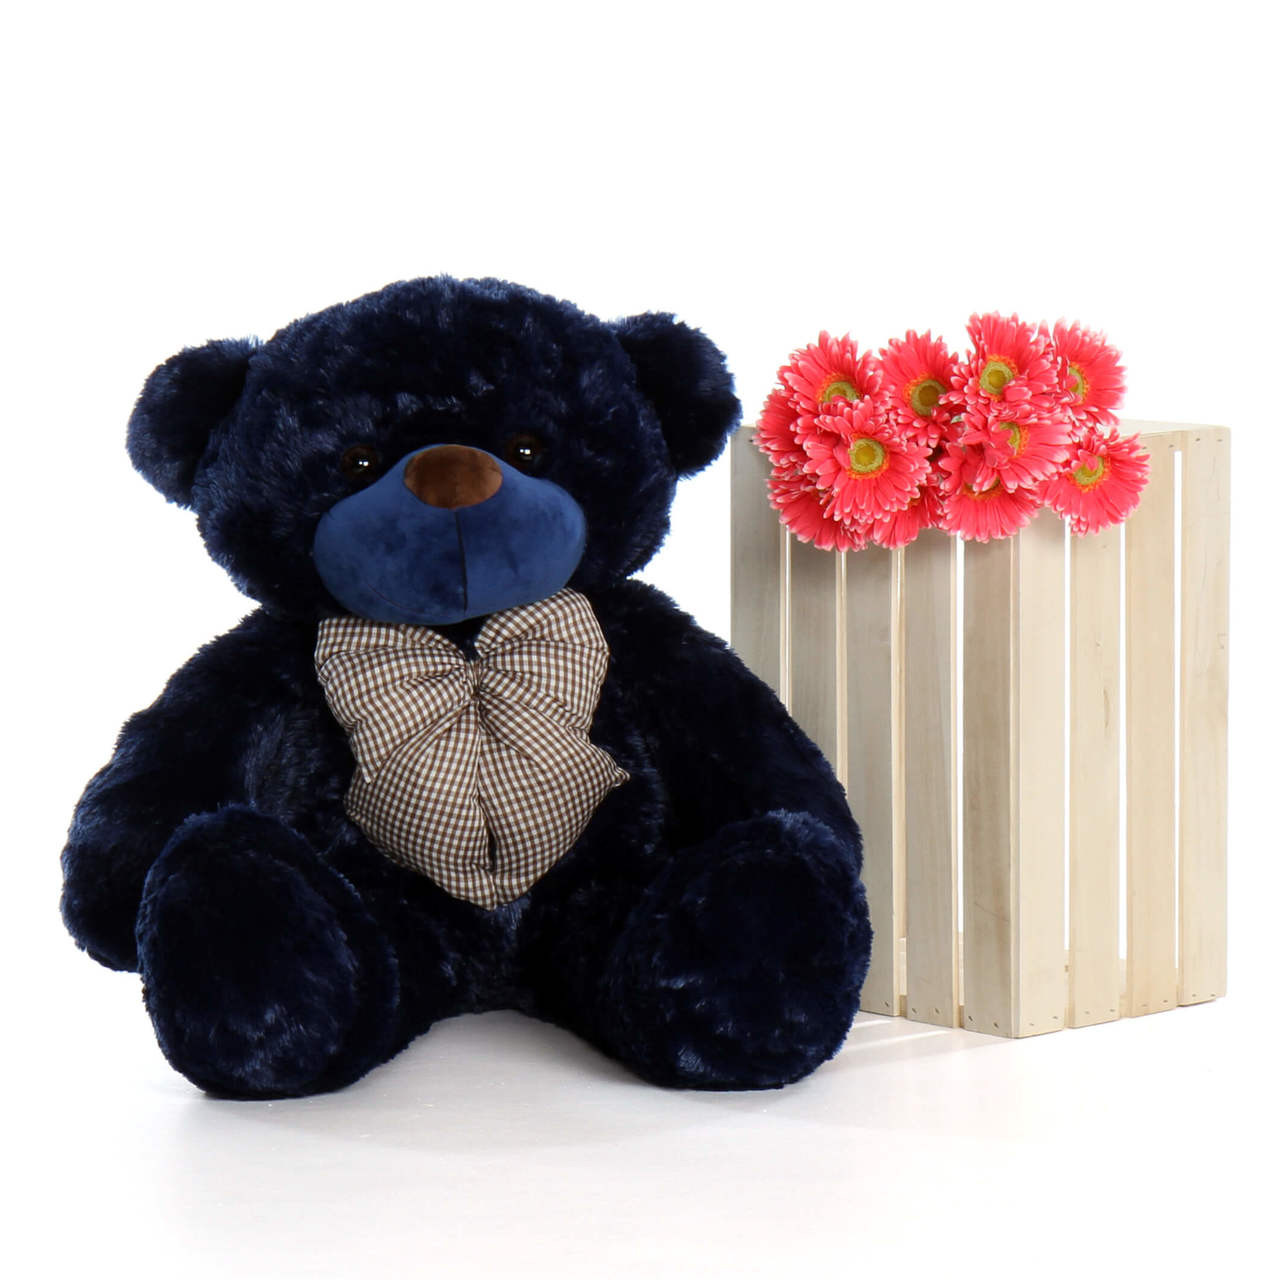 3ft Teddy Bear Navy Blue Royce Cuddles